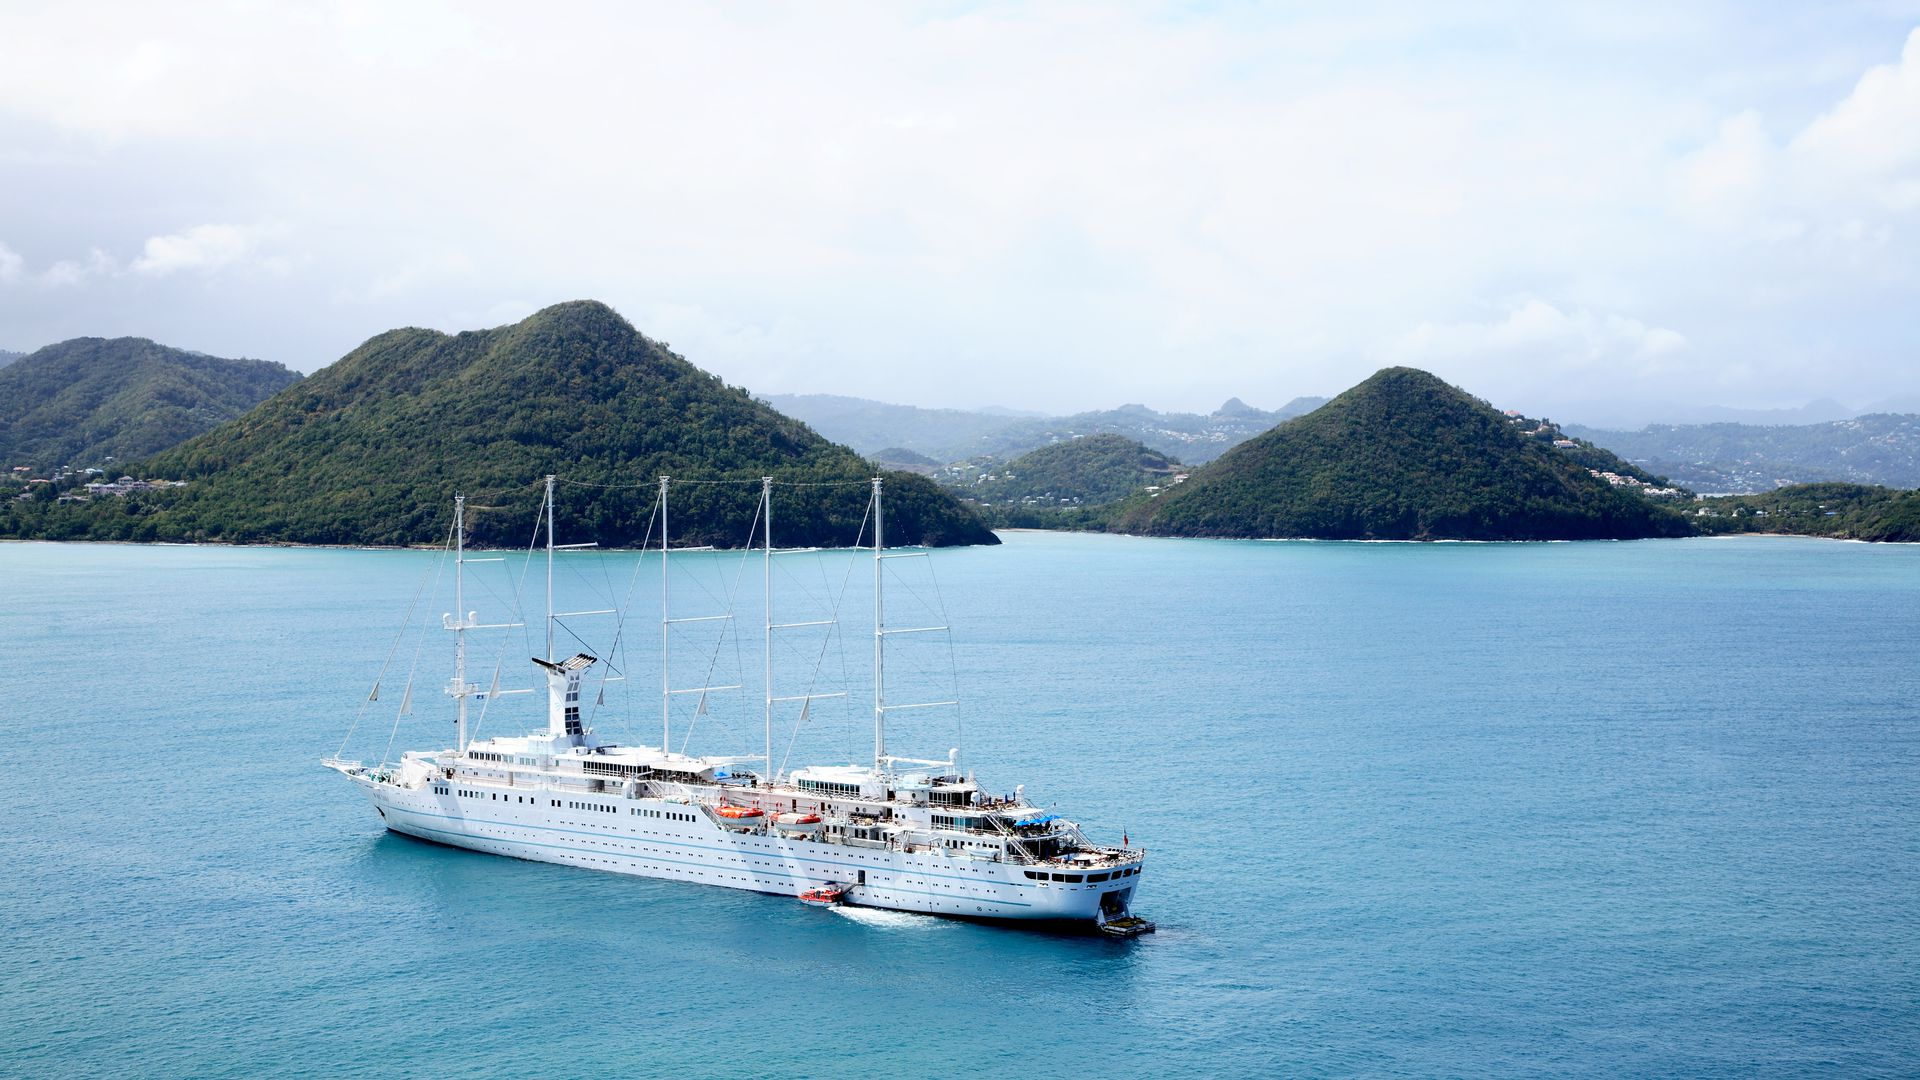 A cruise ship in St. Lucia